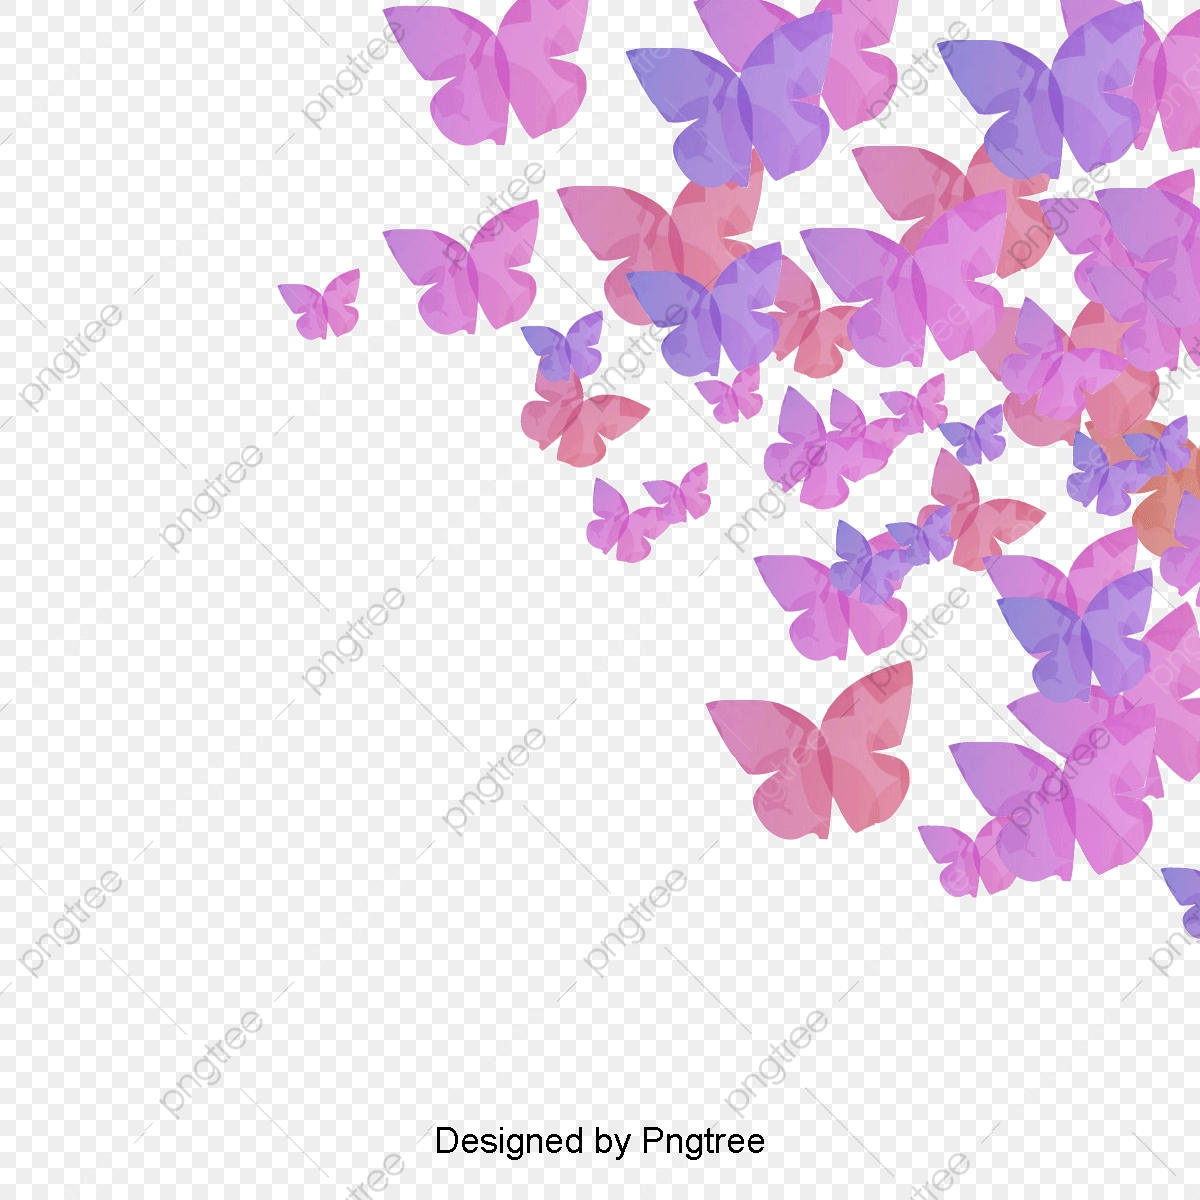 Creative Butterfly Background, Butterfly Clipart, Background Clipart.